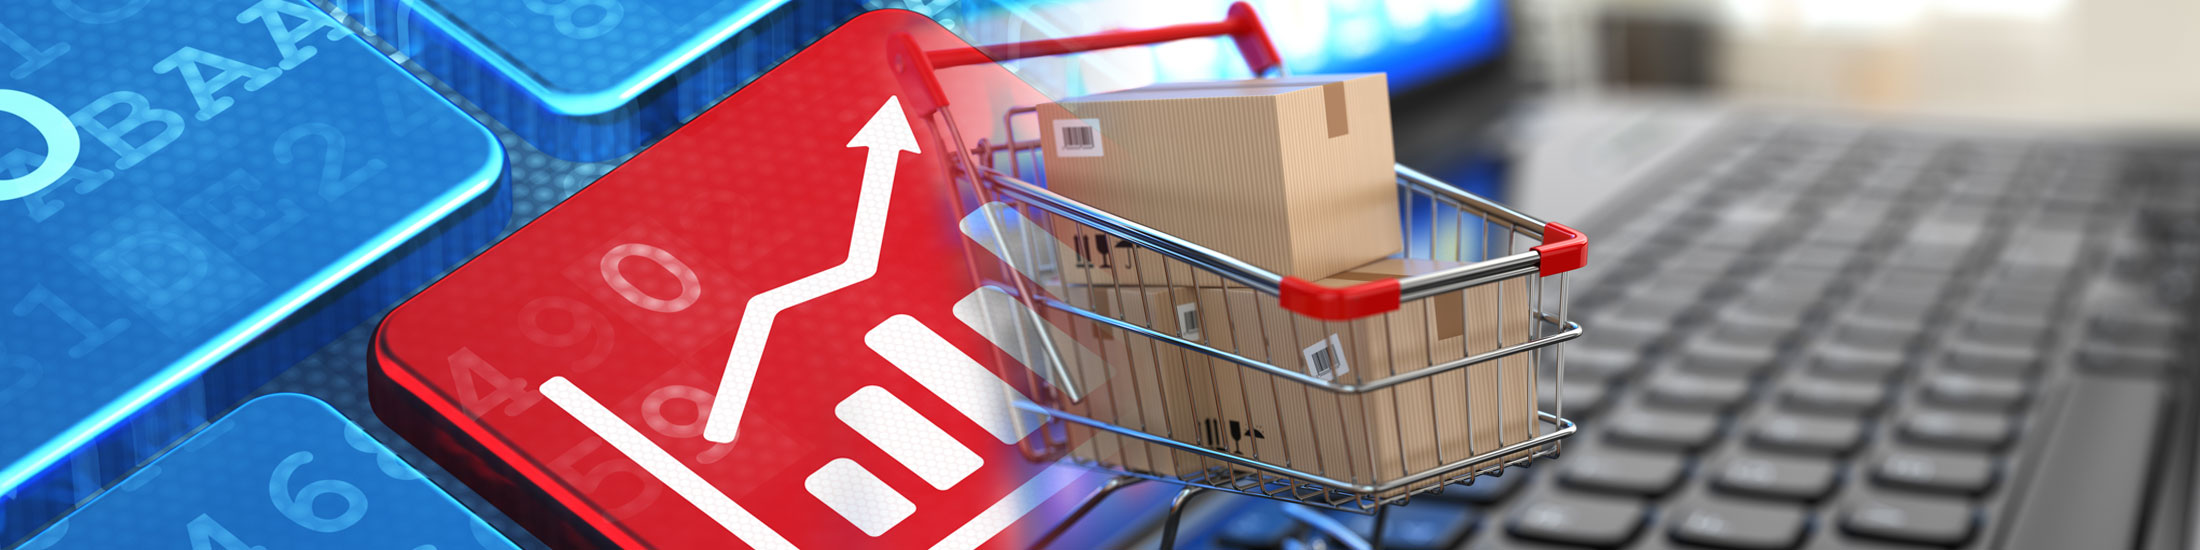 E-Commerce Shows Growth Before and After Christmas Day